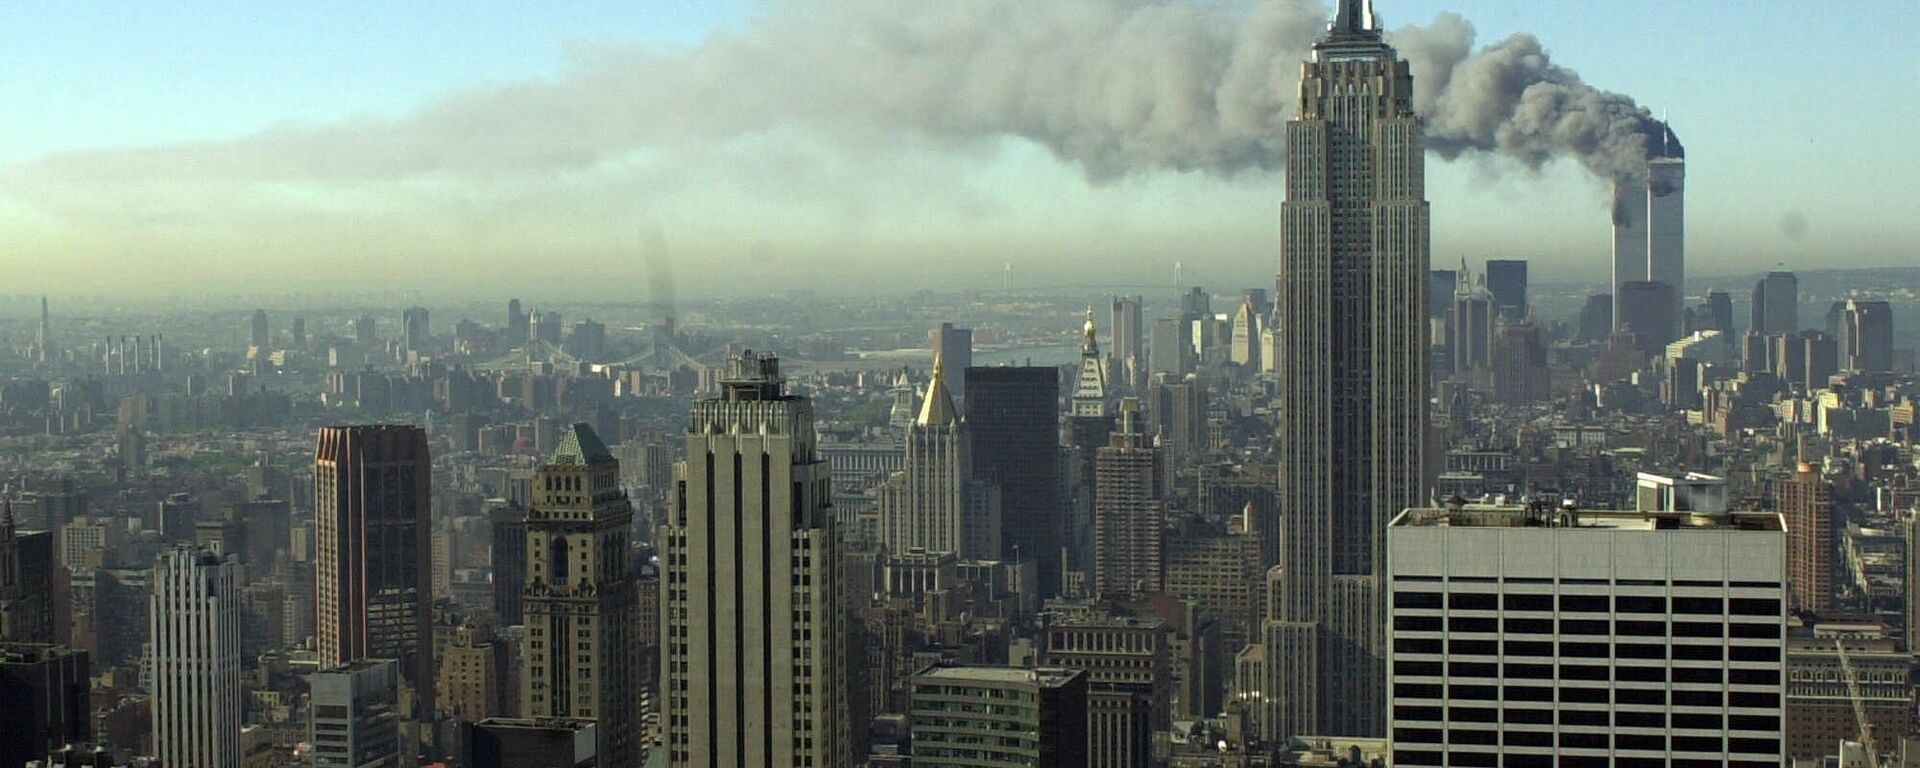 Plumes of smoke pour from the World Trade Center buildings in New York Tuesday, Sept. 11, 2001. Planes crashed into the upper floors of both World Trade Center towers minutes apart Tuesday in a horrific scene of explosions and fires that left gaping holes in the 110-story buildings - Sputnik International, 1920, 16.04.2020